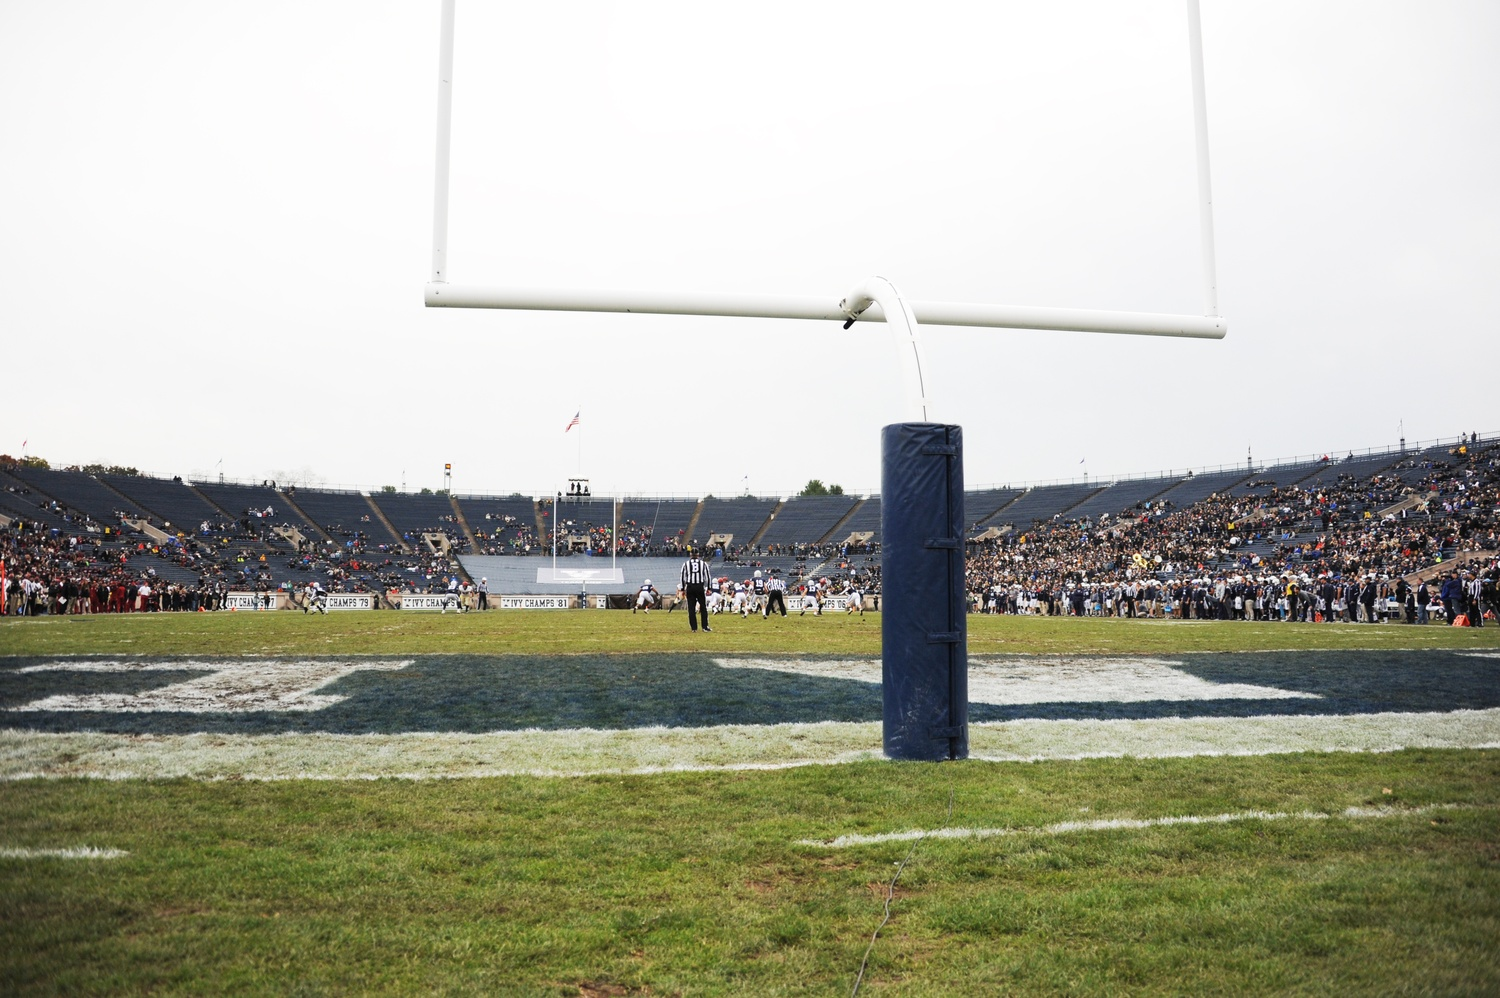 More than 700 students have signed a petition to keep the annual Harvard-Yale tailgate at Cumnock Field.